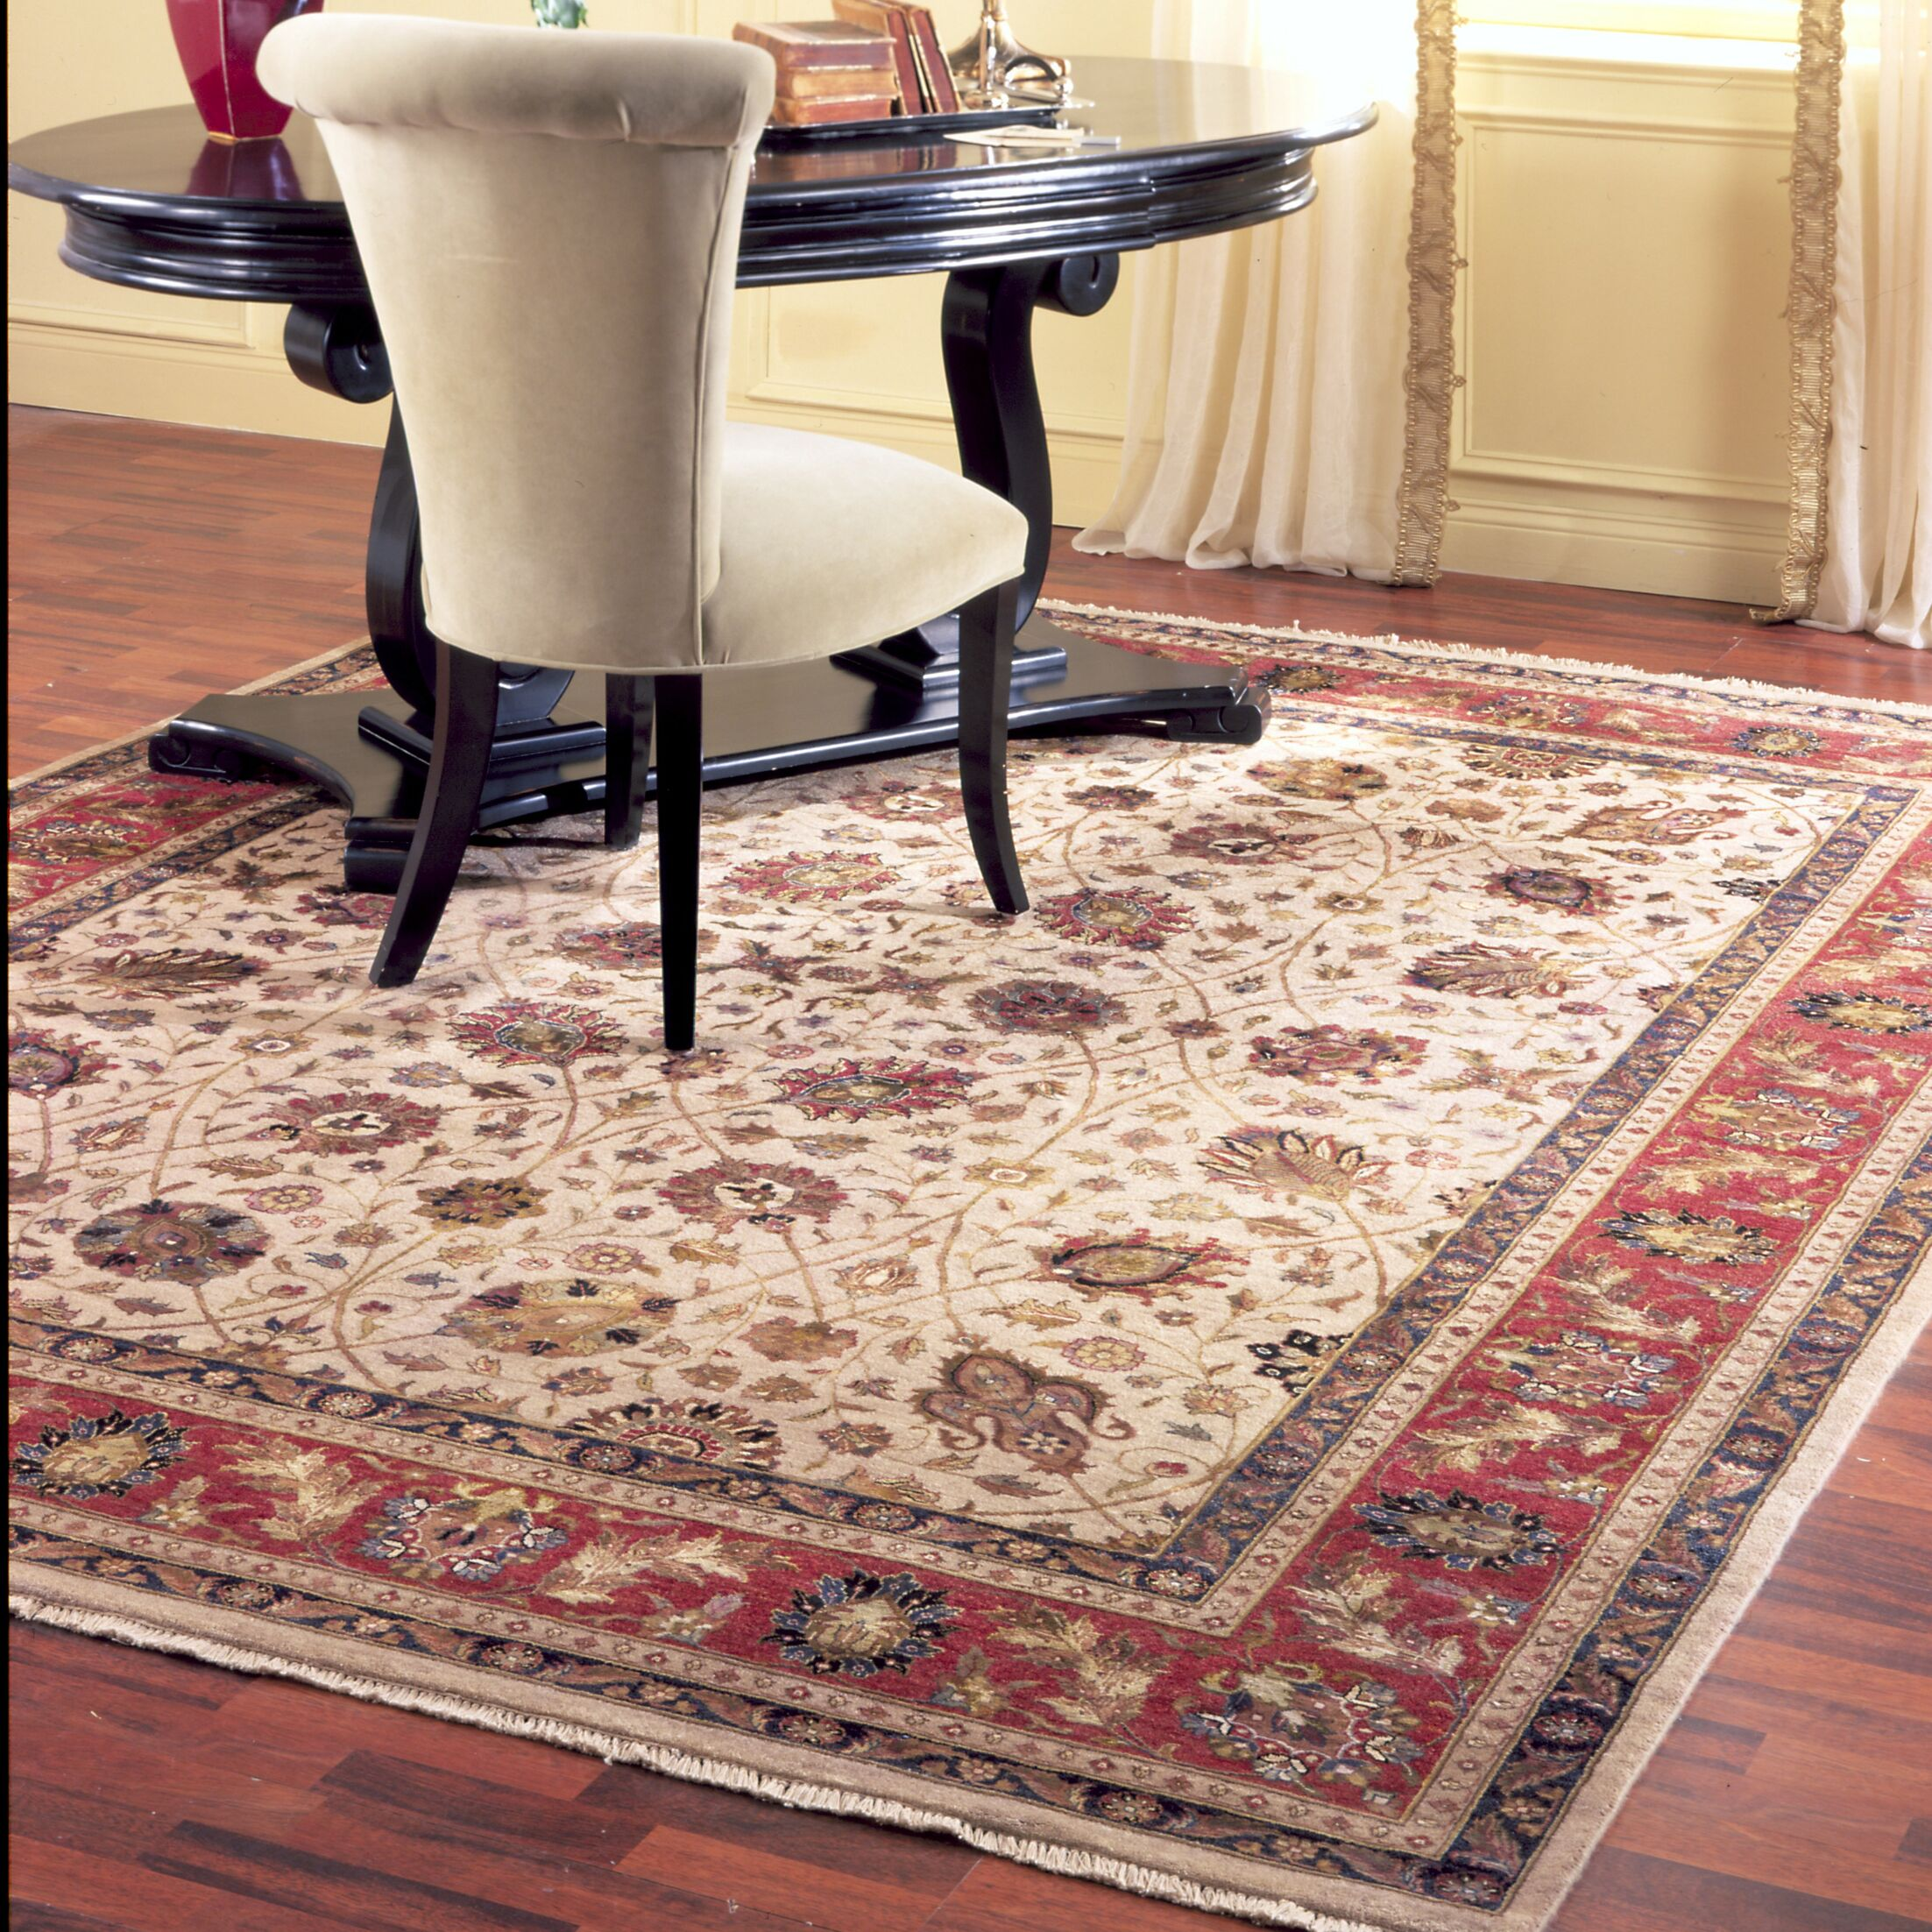 Ahuja Hand-Woven Red/Beige Area Rug Rug Size: Runner 2'6